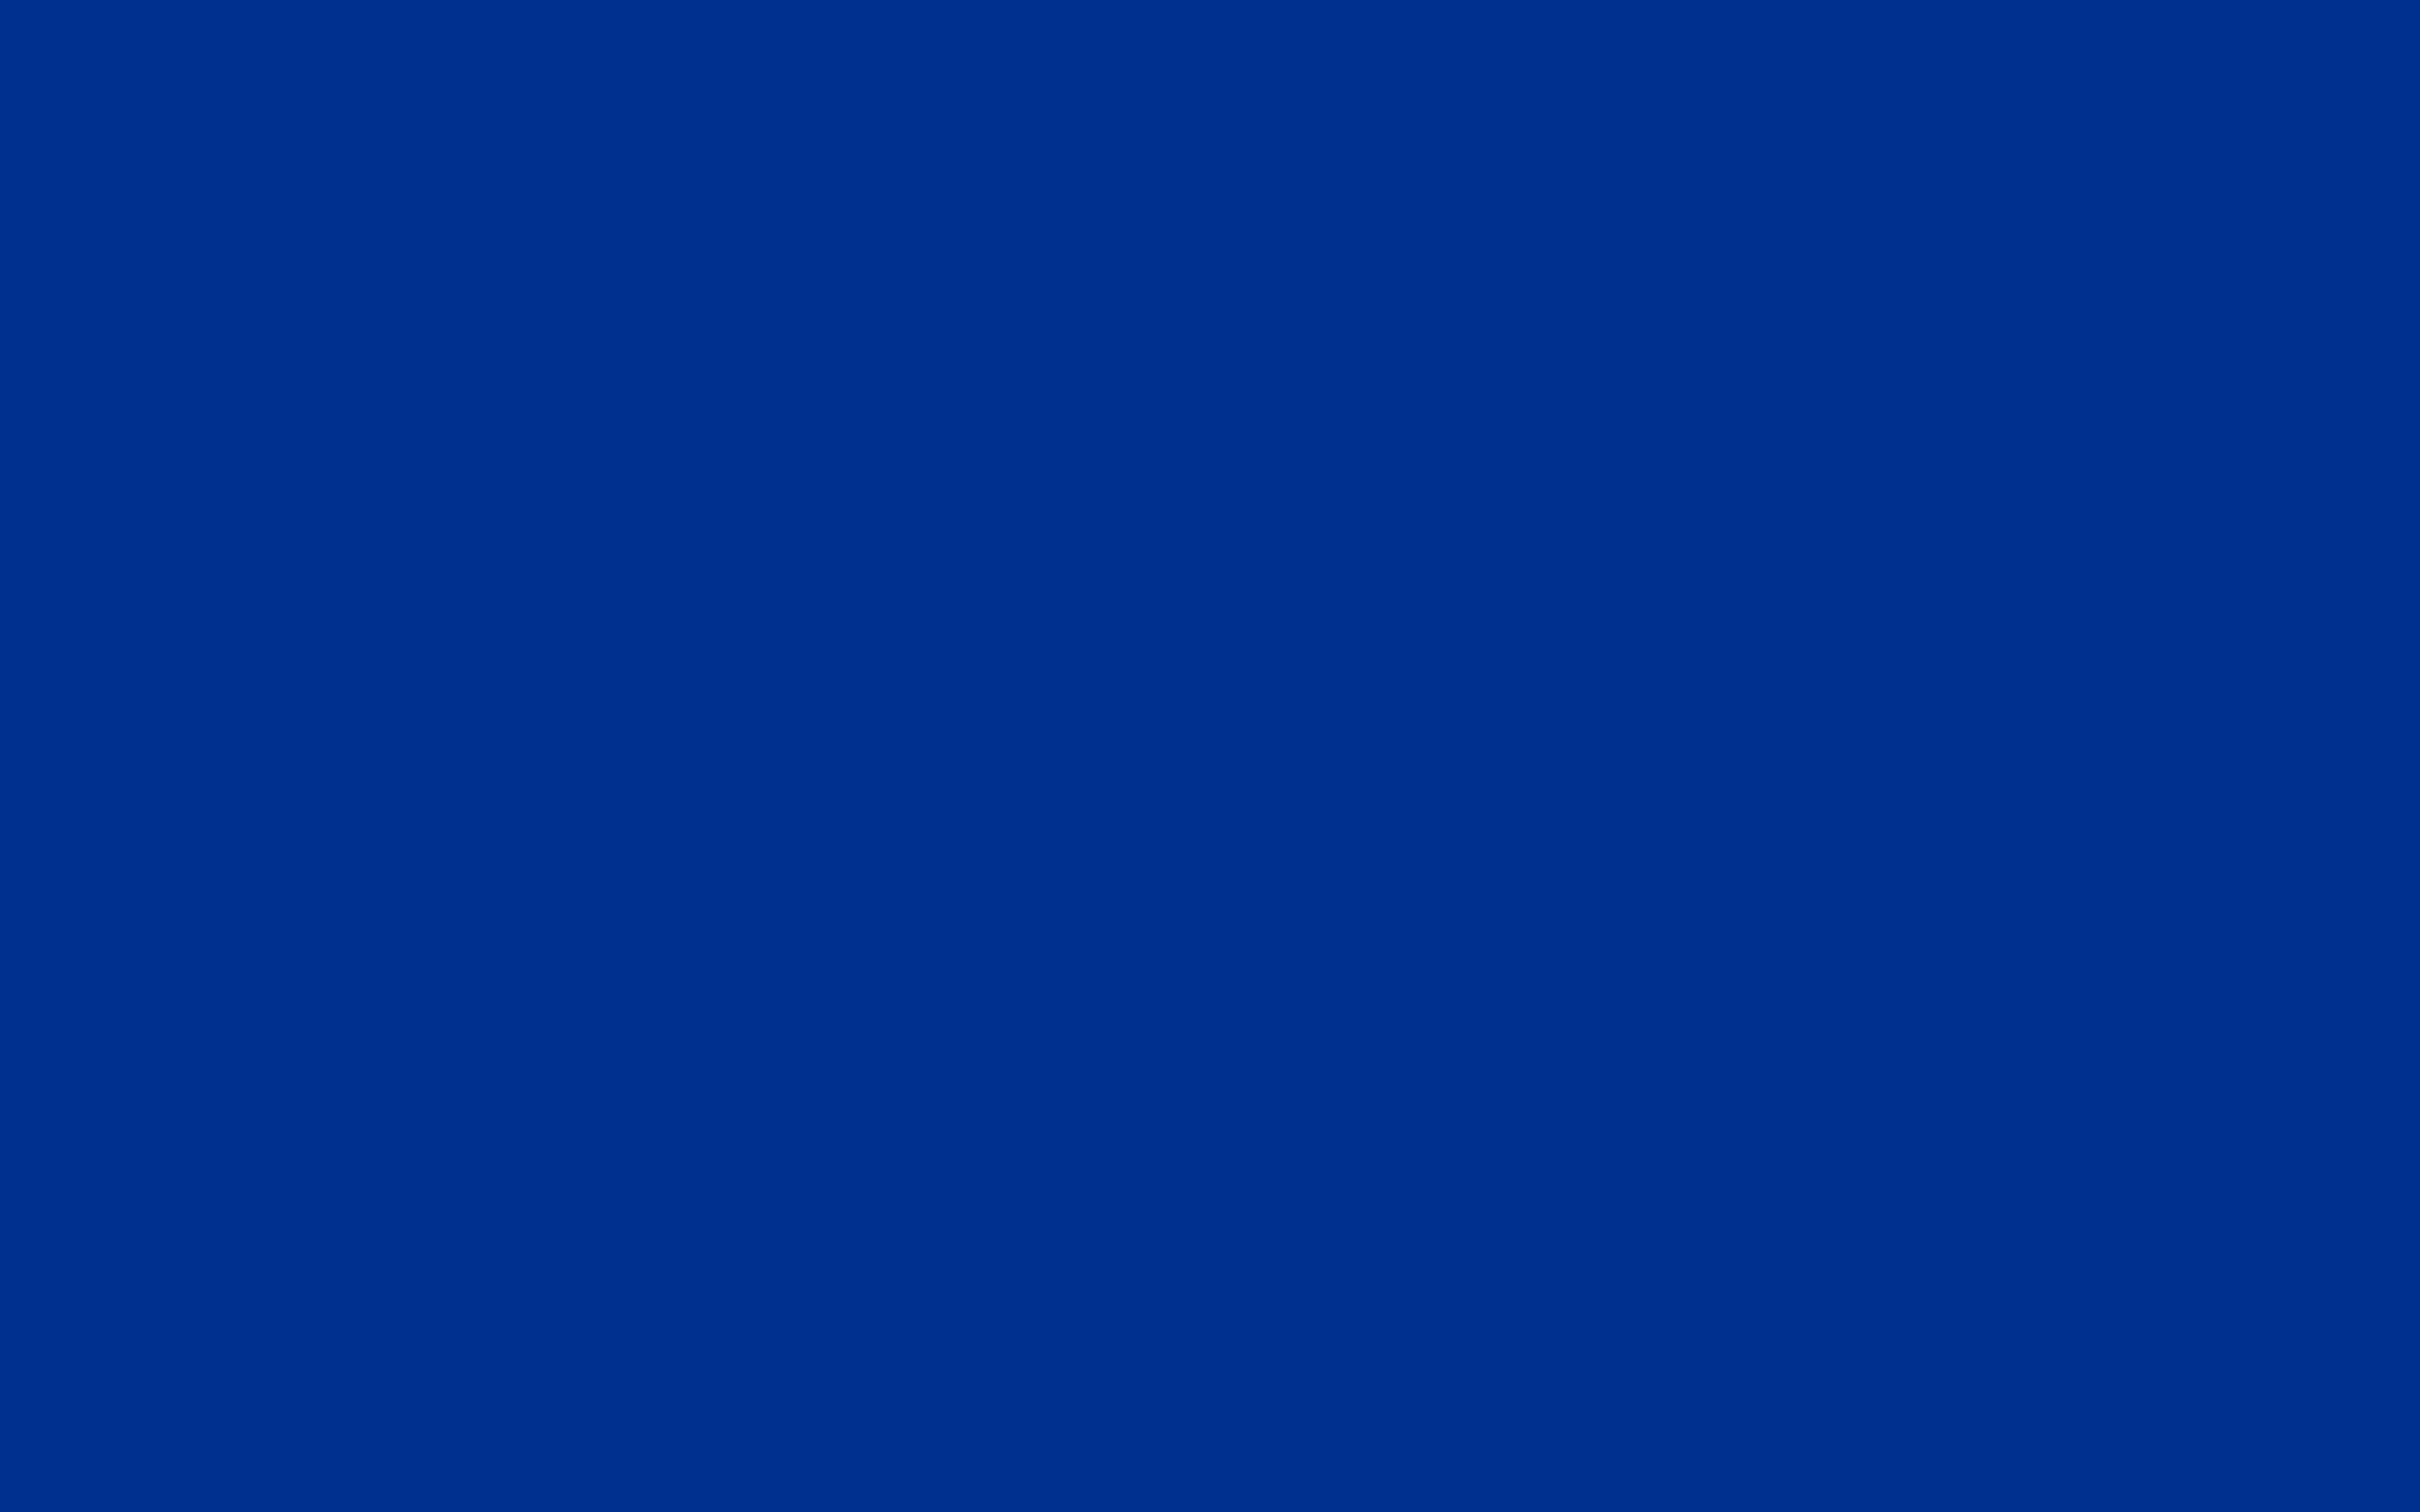 2560x1600 Air Force Dark Blue Solid Color Background